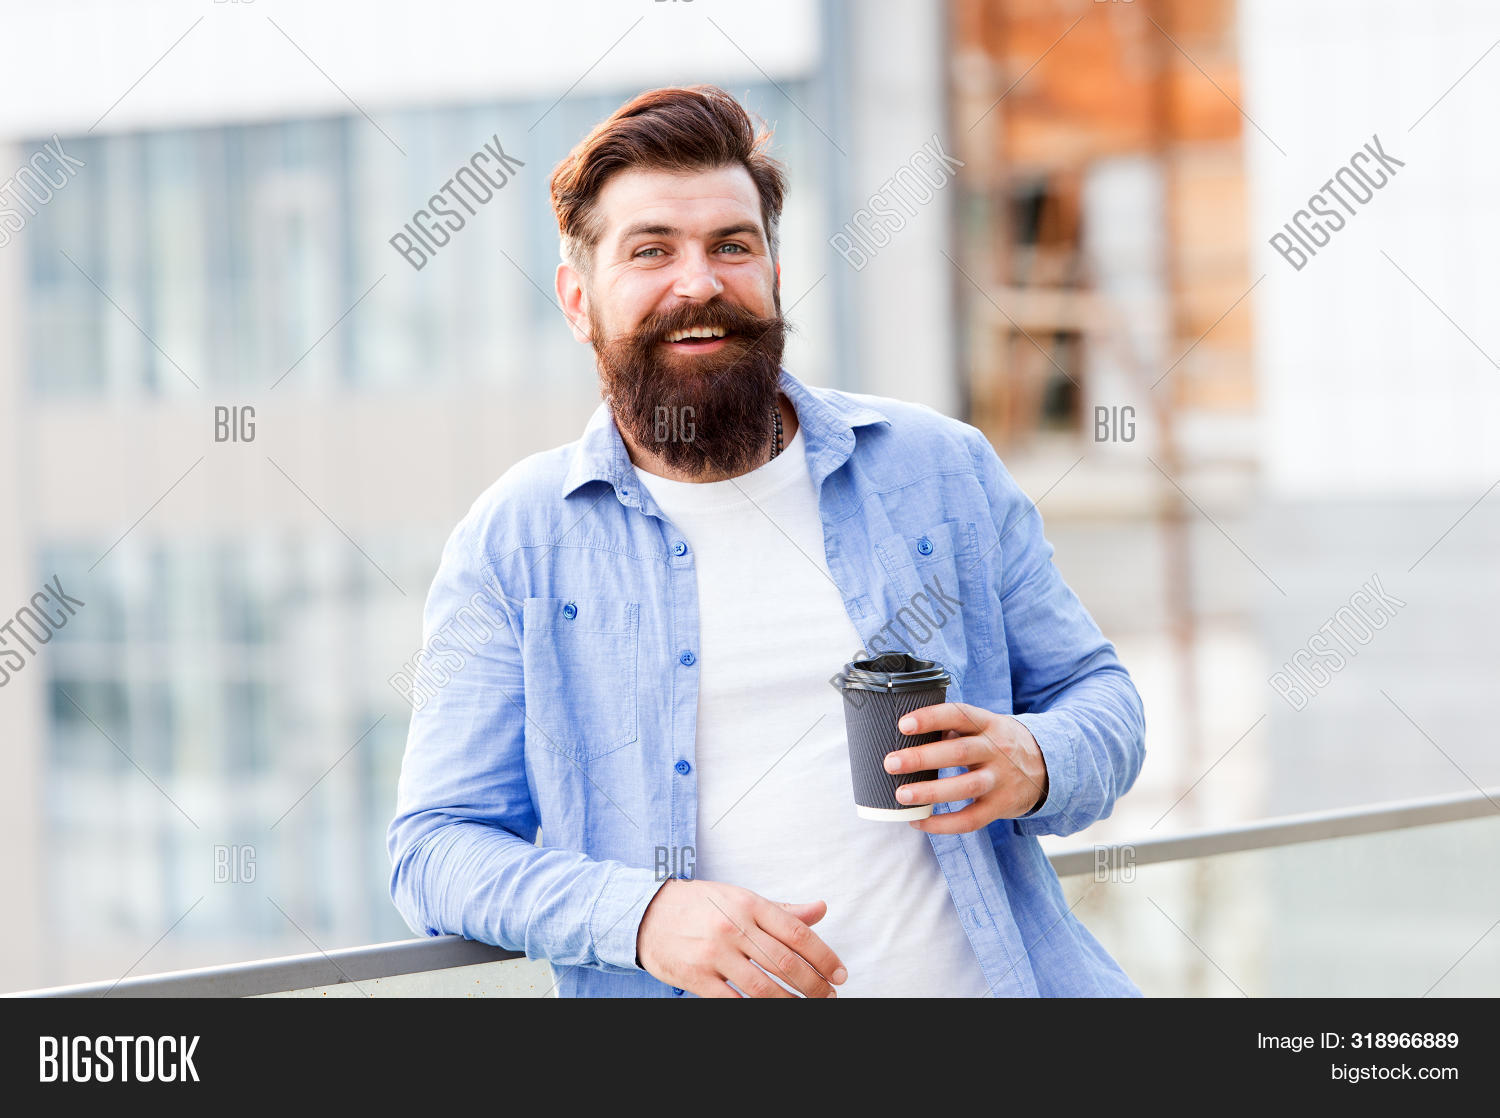 addicted,adult,alone,away,background,beard,bearded,beverage,break,brutal,brutality,caffeine,cappuccino,coffee,completes,concept,cup,drink,energy,enjoy,guy,handsome,happy,hipster,hold,hot,make,making,man,mature,me,morning,mustache,outdoors,paper,relax,relaxing,reloading,sip,smile,stylish,take,urban,useful,yourself